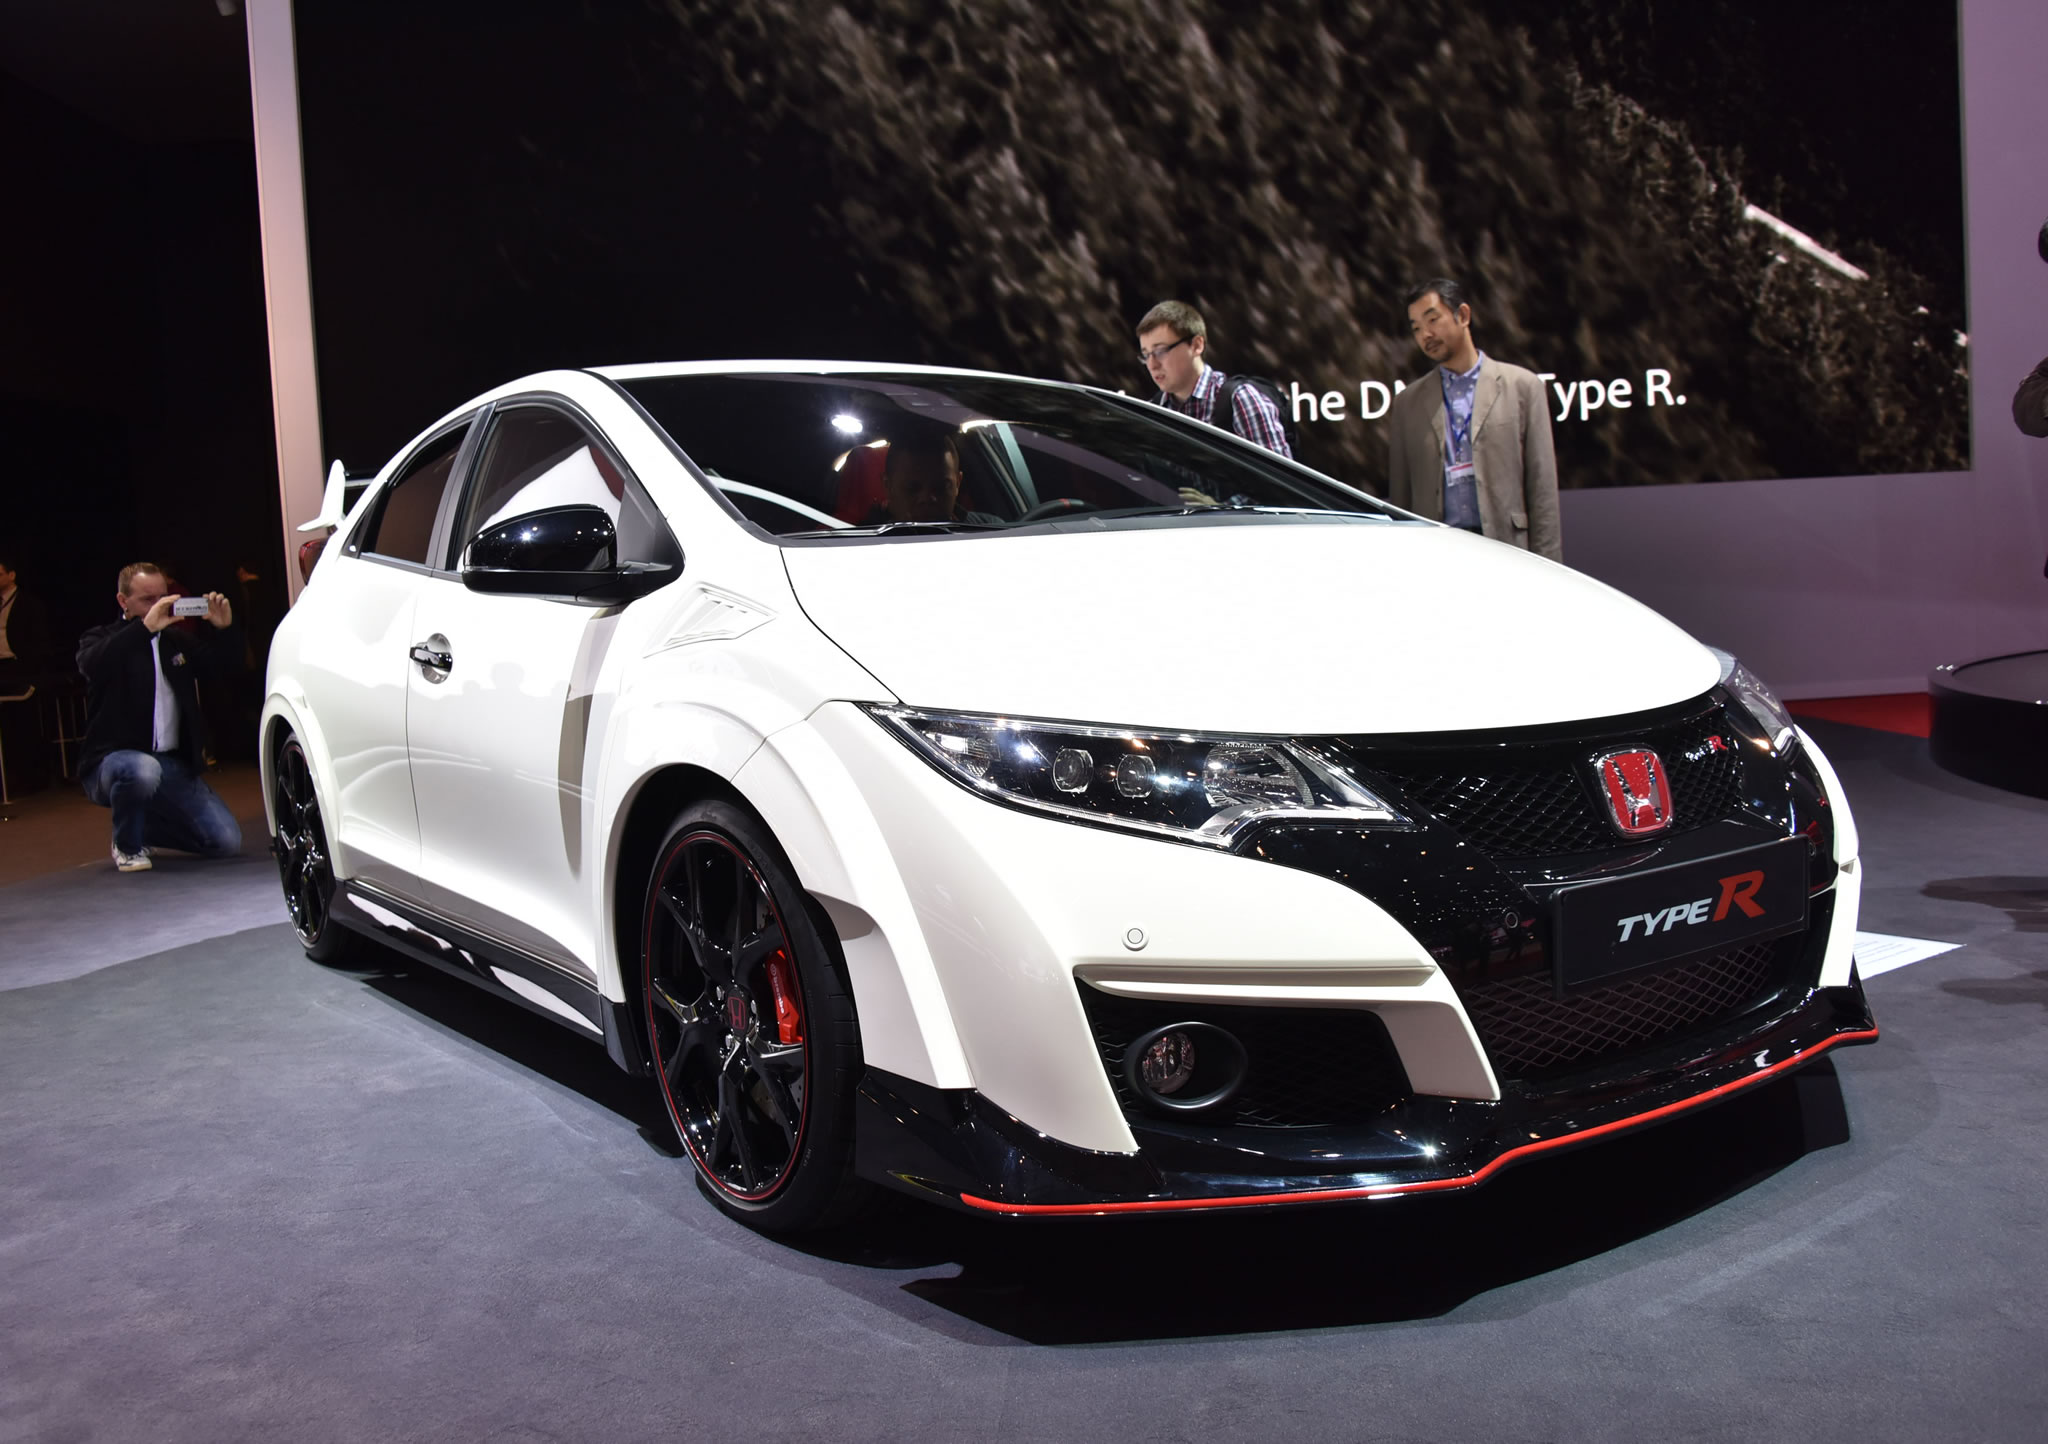 2015 honda civic type r front photo championship white. Black Bedroom Furniture Sets. Home Design Ideas